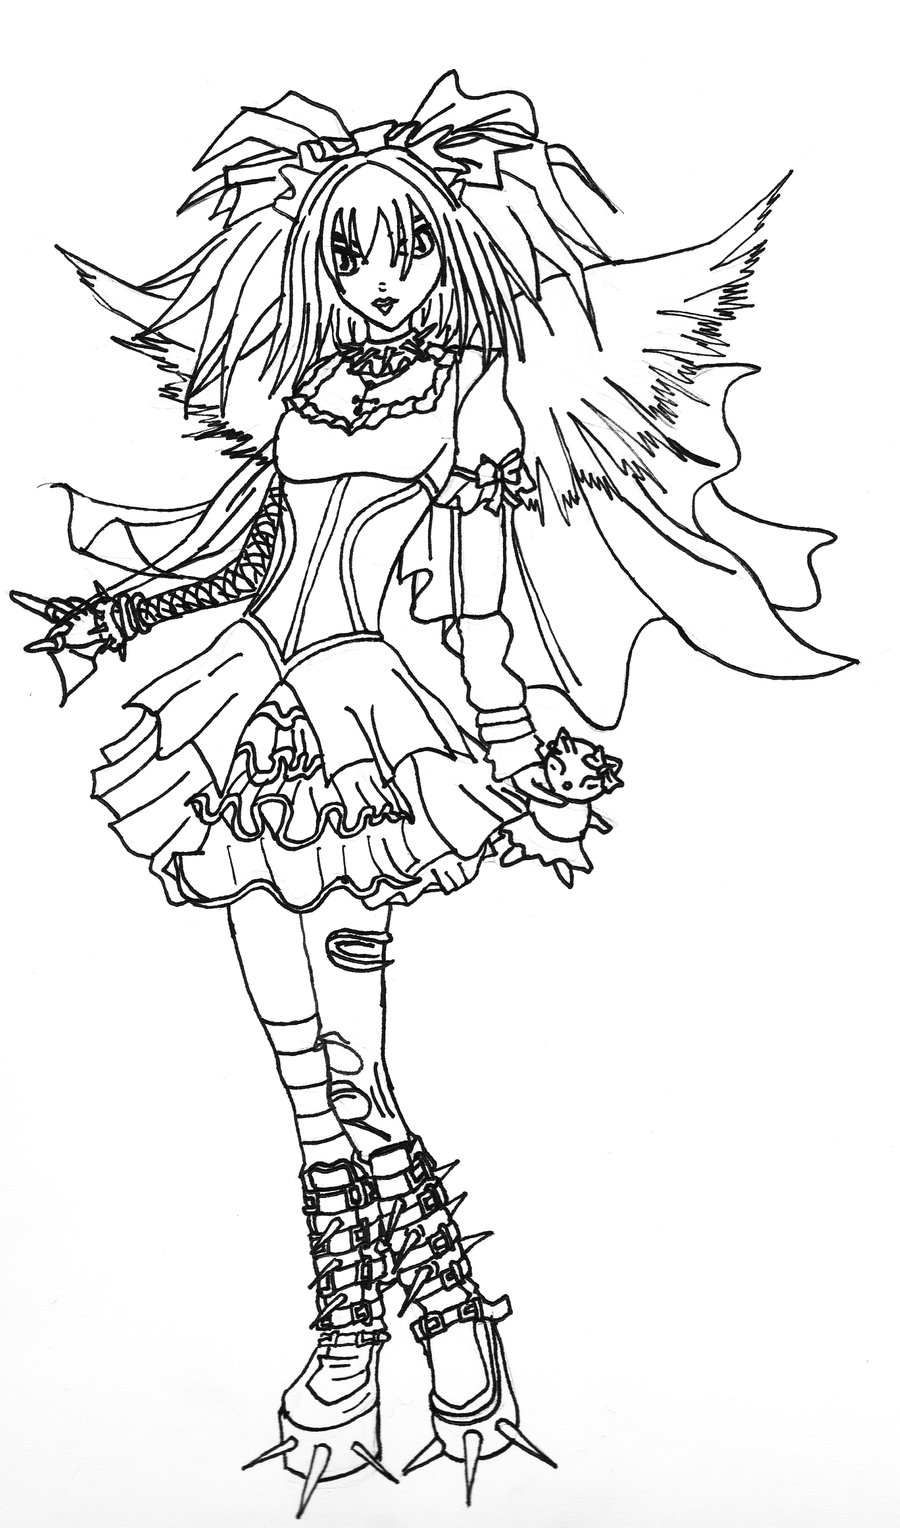 Dark angel coloring download dark angel coloring for Coloring page angel